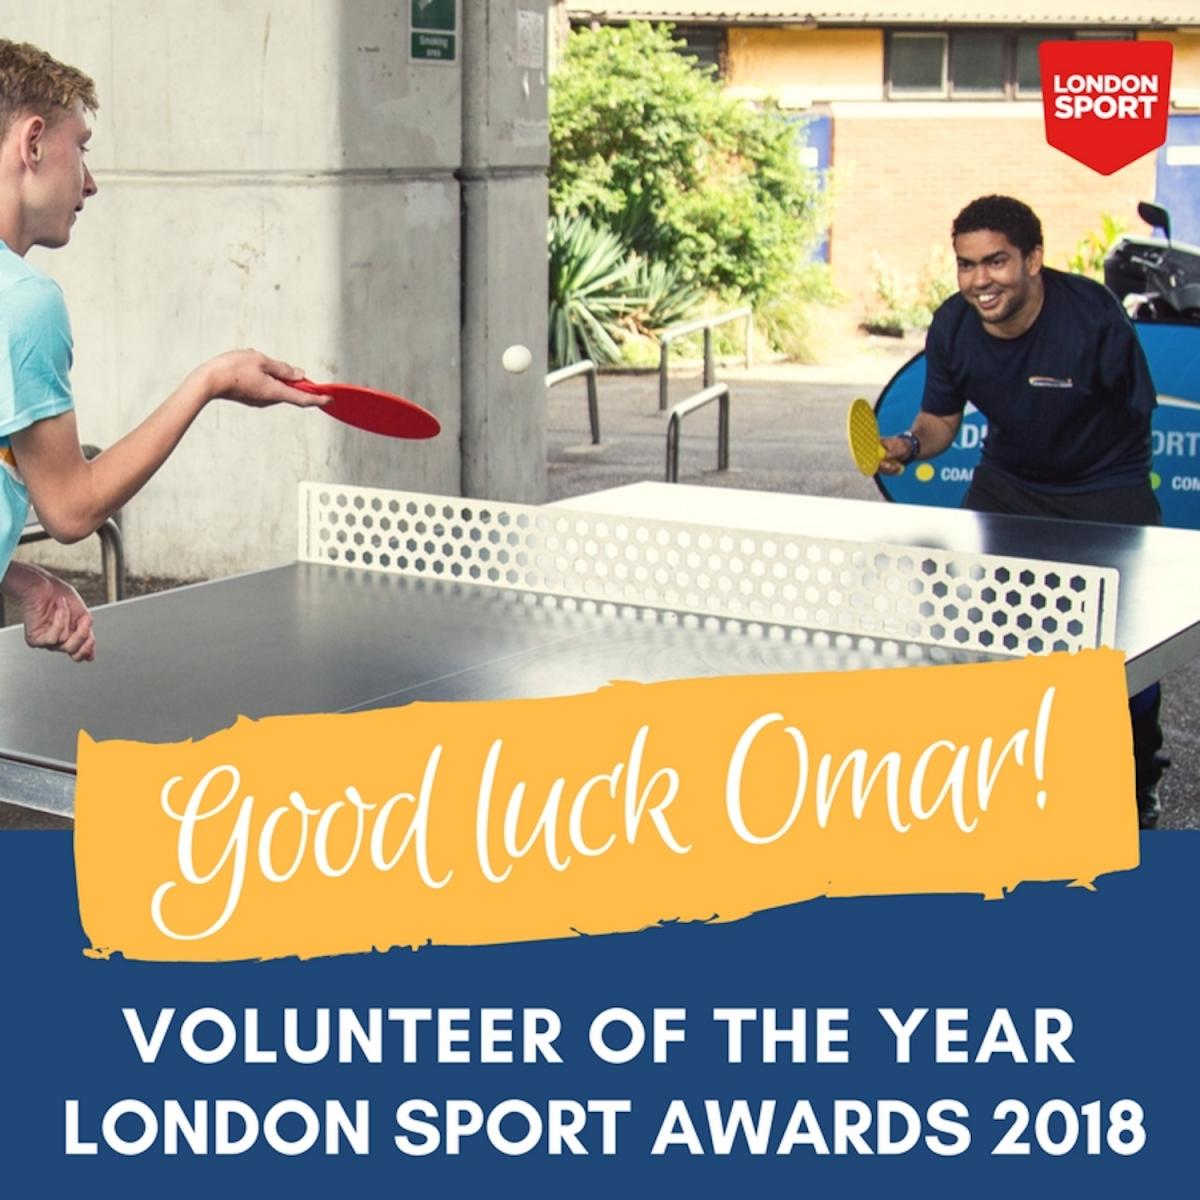 London Sport Awards 2018 - Volunteer of the Year Award - Omar Shariff, Disability Sports Coach